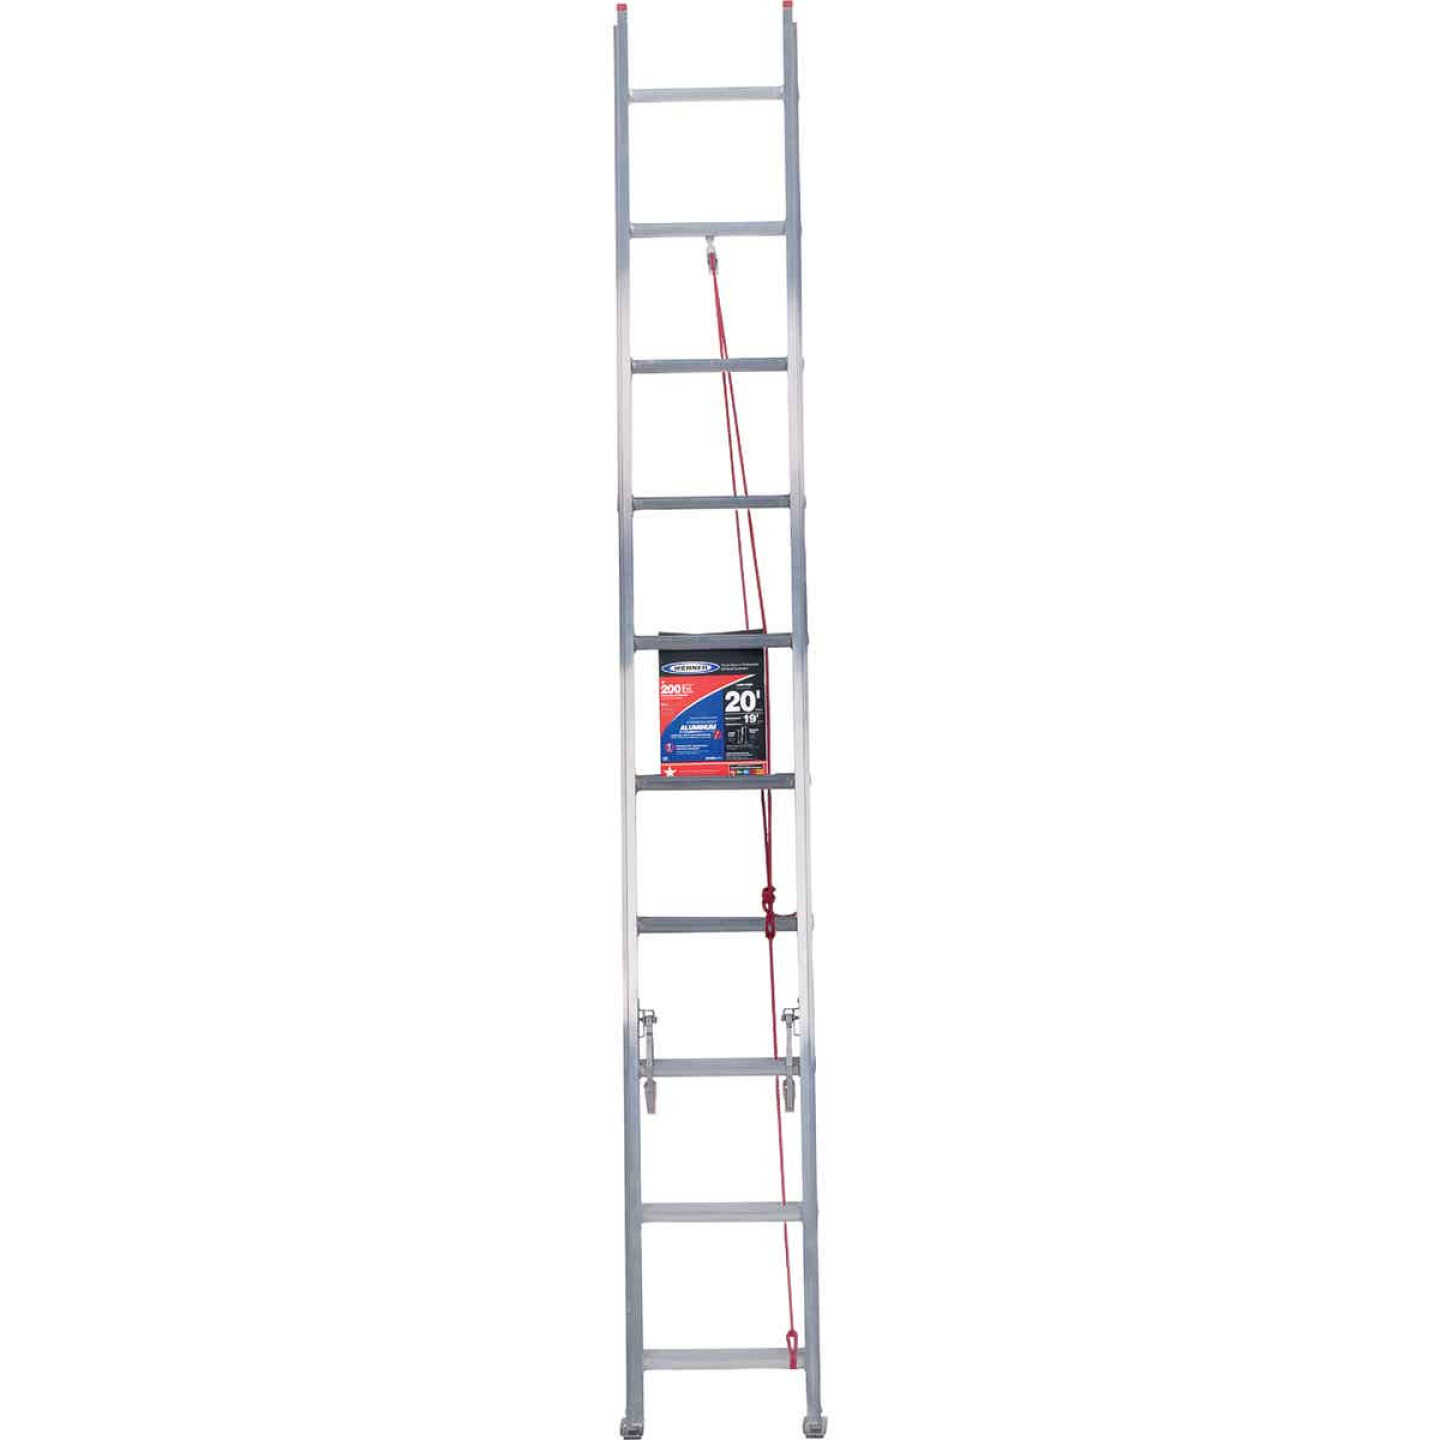 Werner 20 Ft. Aluminum Extension Ladder with 200 Lb. Load Capacity Type III Duty Rating Image 3